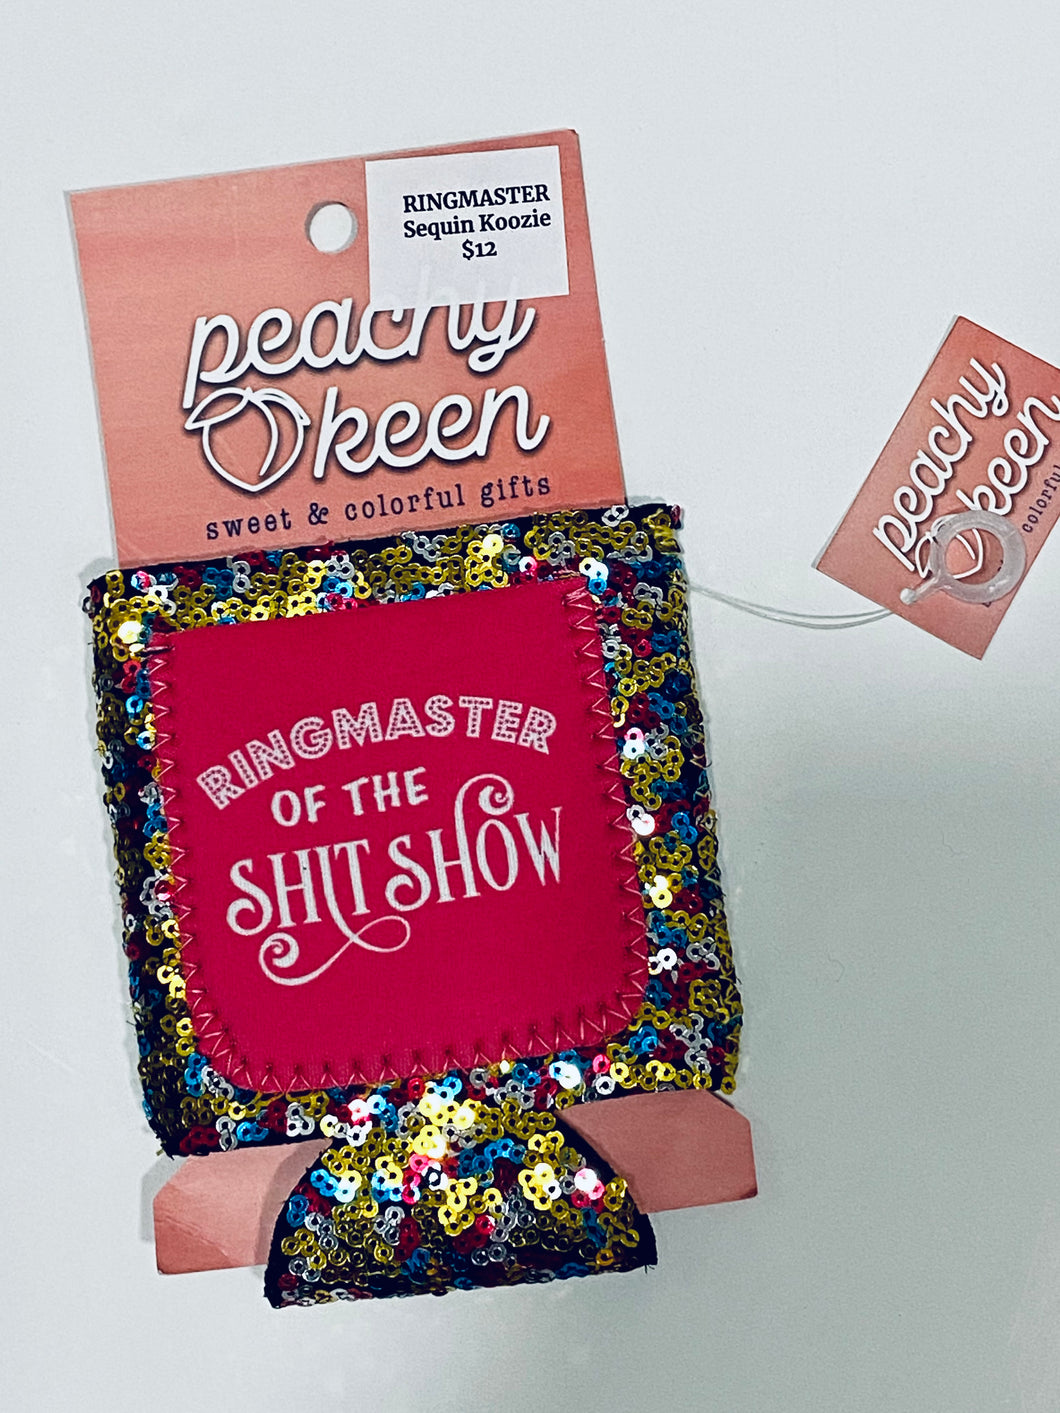 Ringmaster of the Shit Show Sequin Koozie